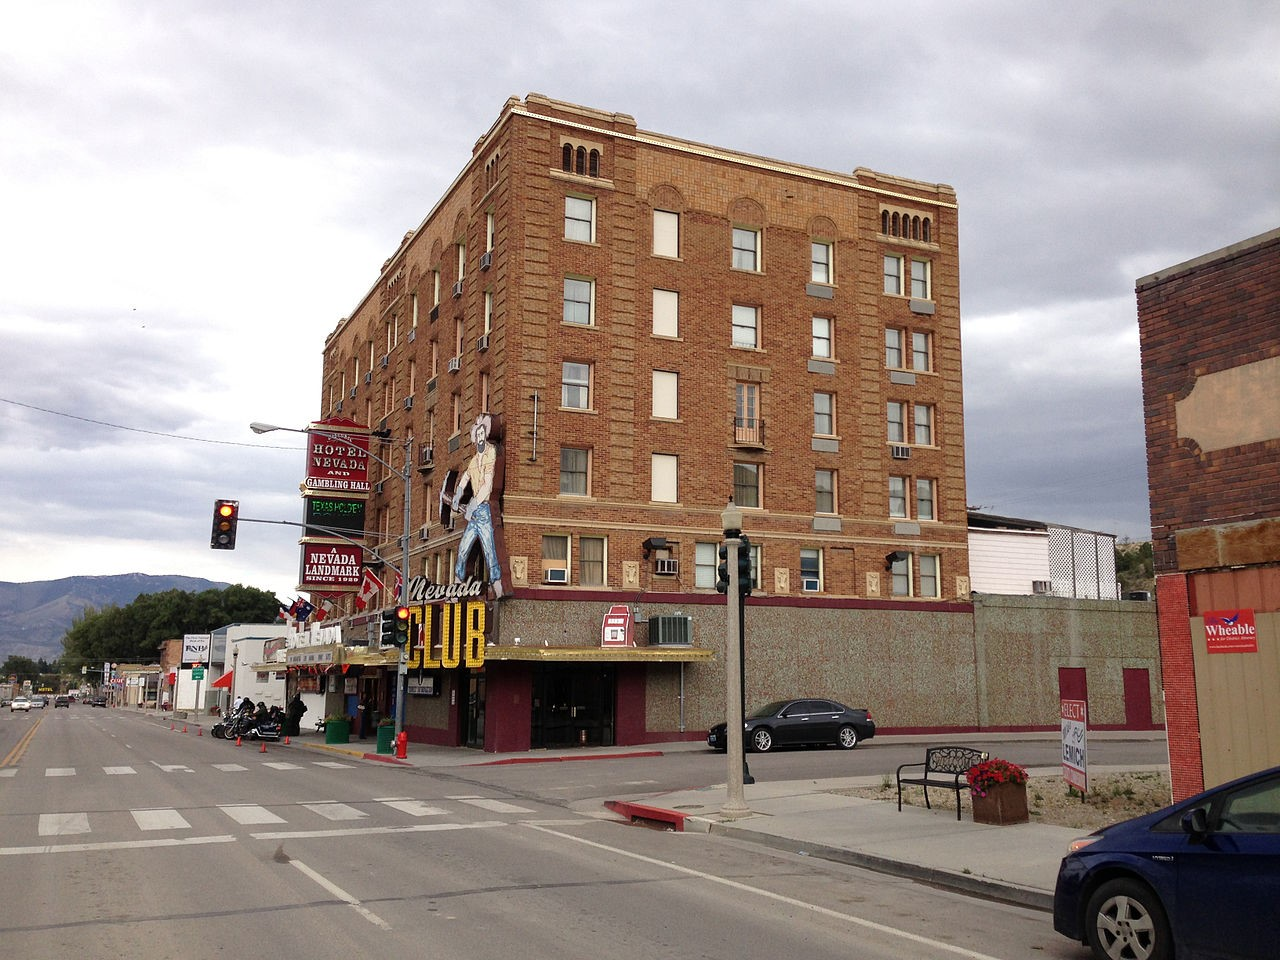 Hotel Nevada and Gambling Hall